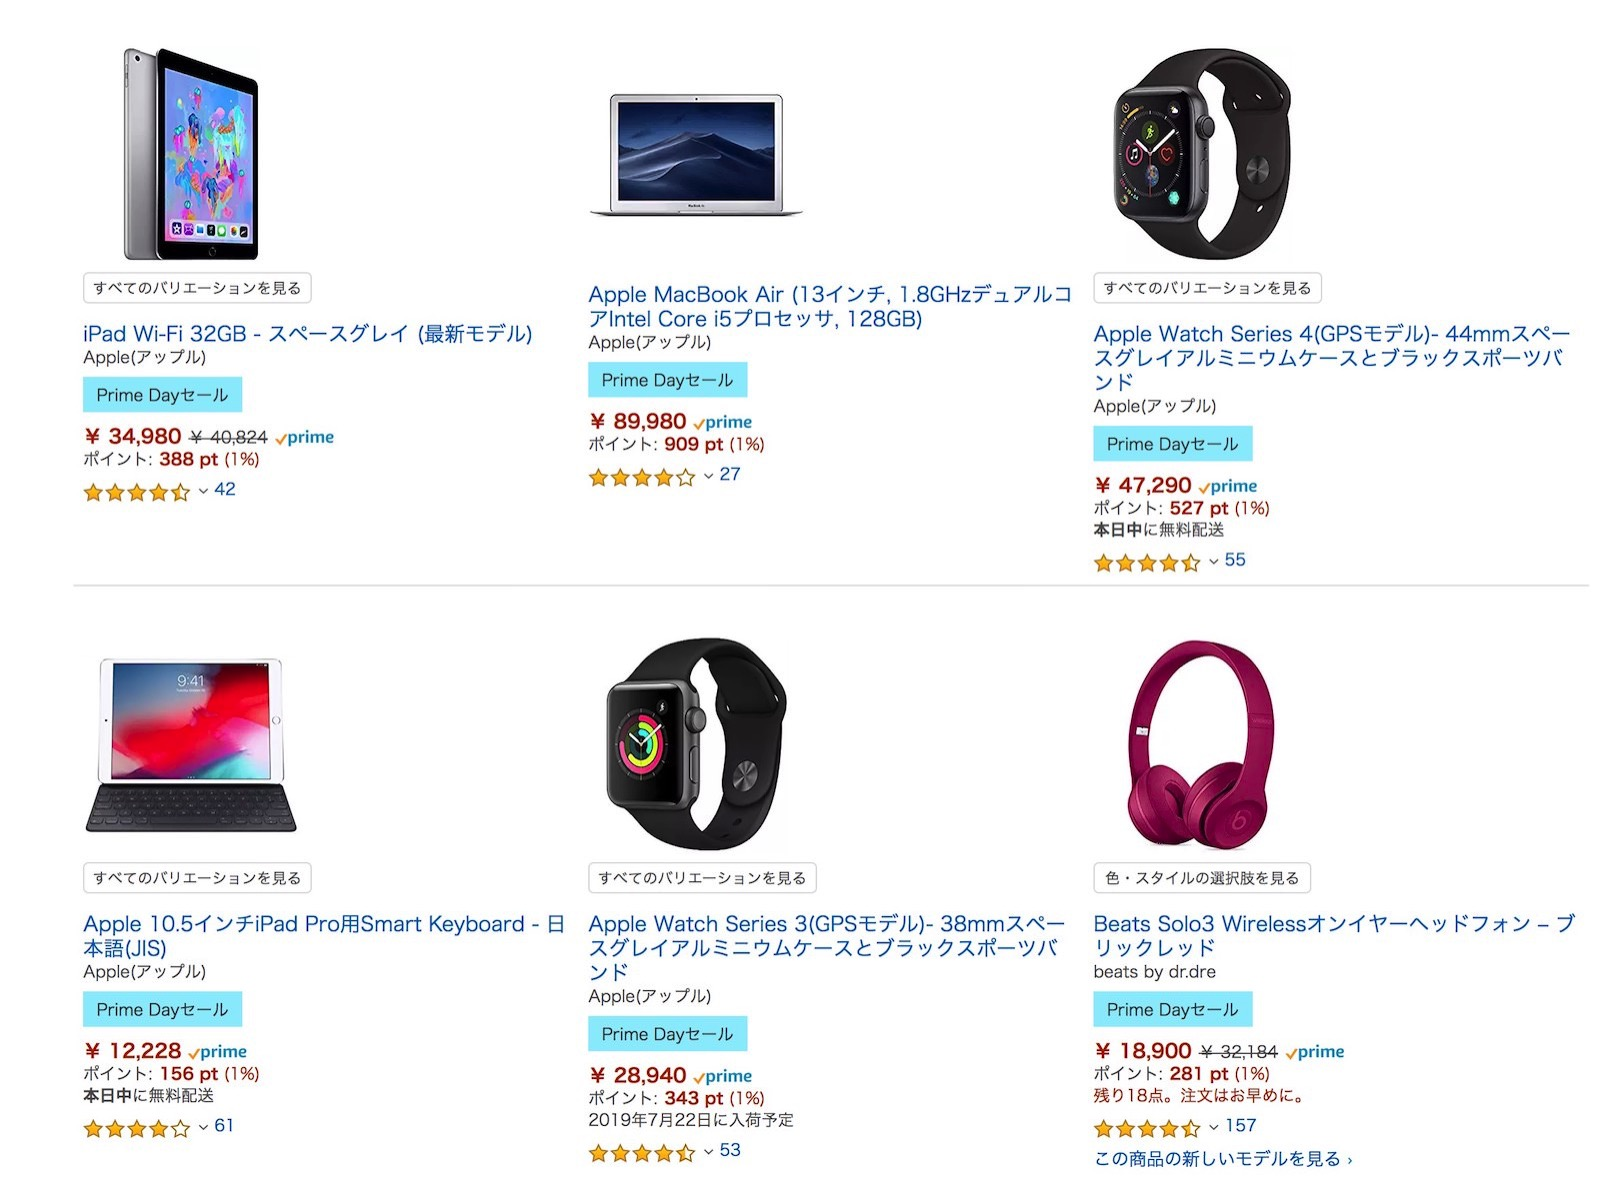 Apple products prime day